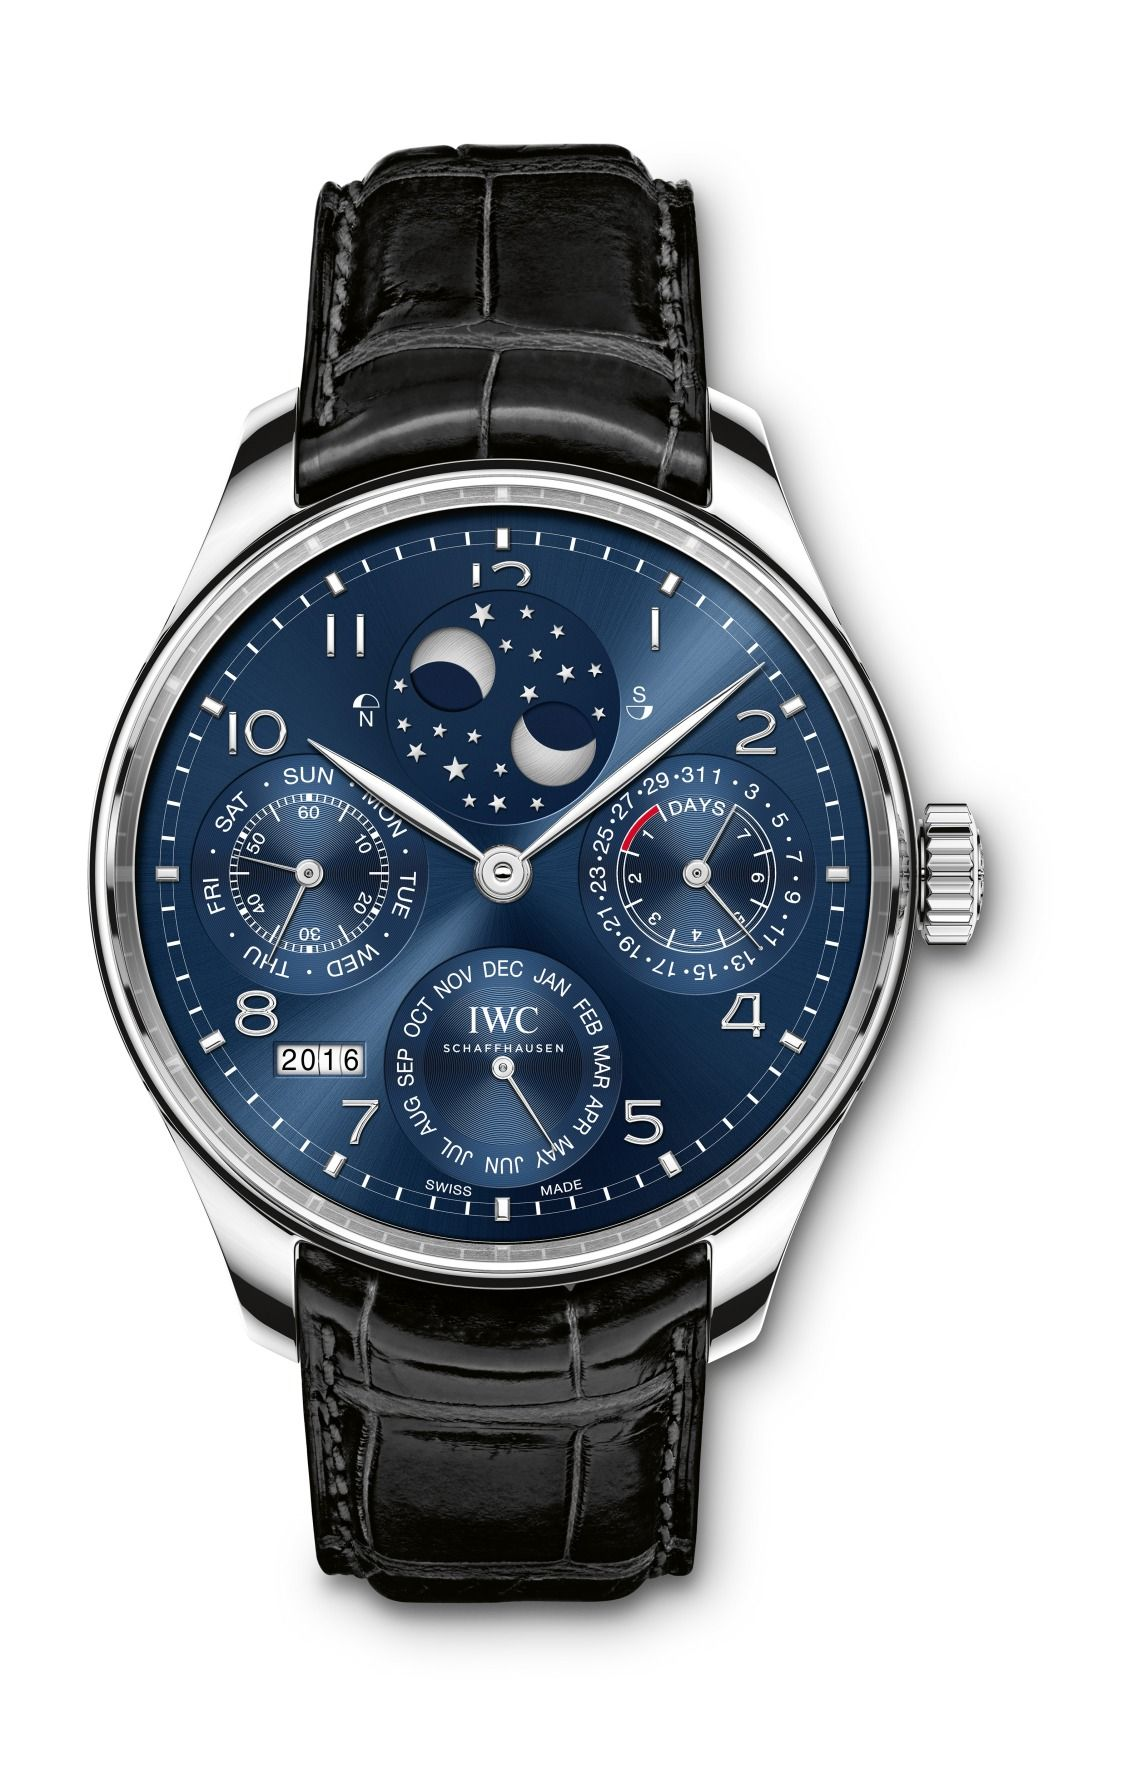 a84c781b3c0 The IWC Portugieser Perpetual Calendar. Add it to your holiday wish list!